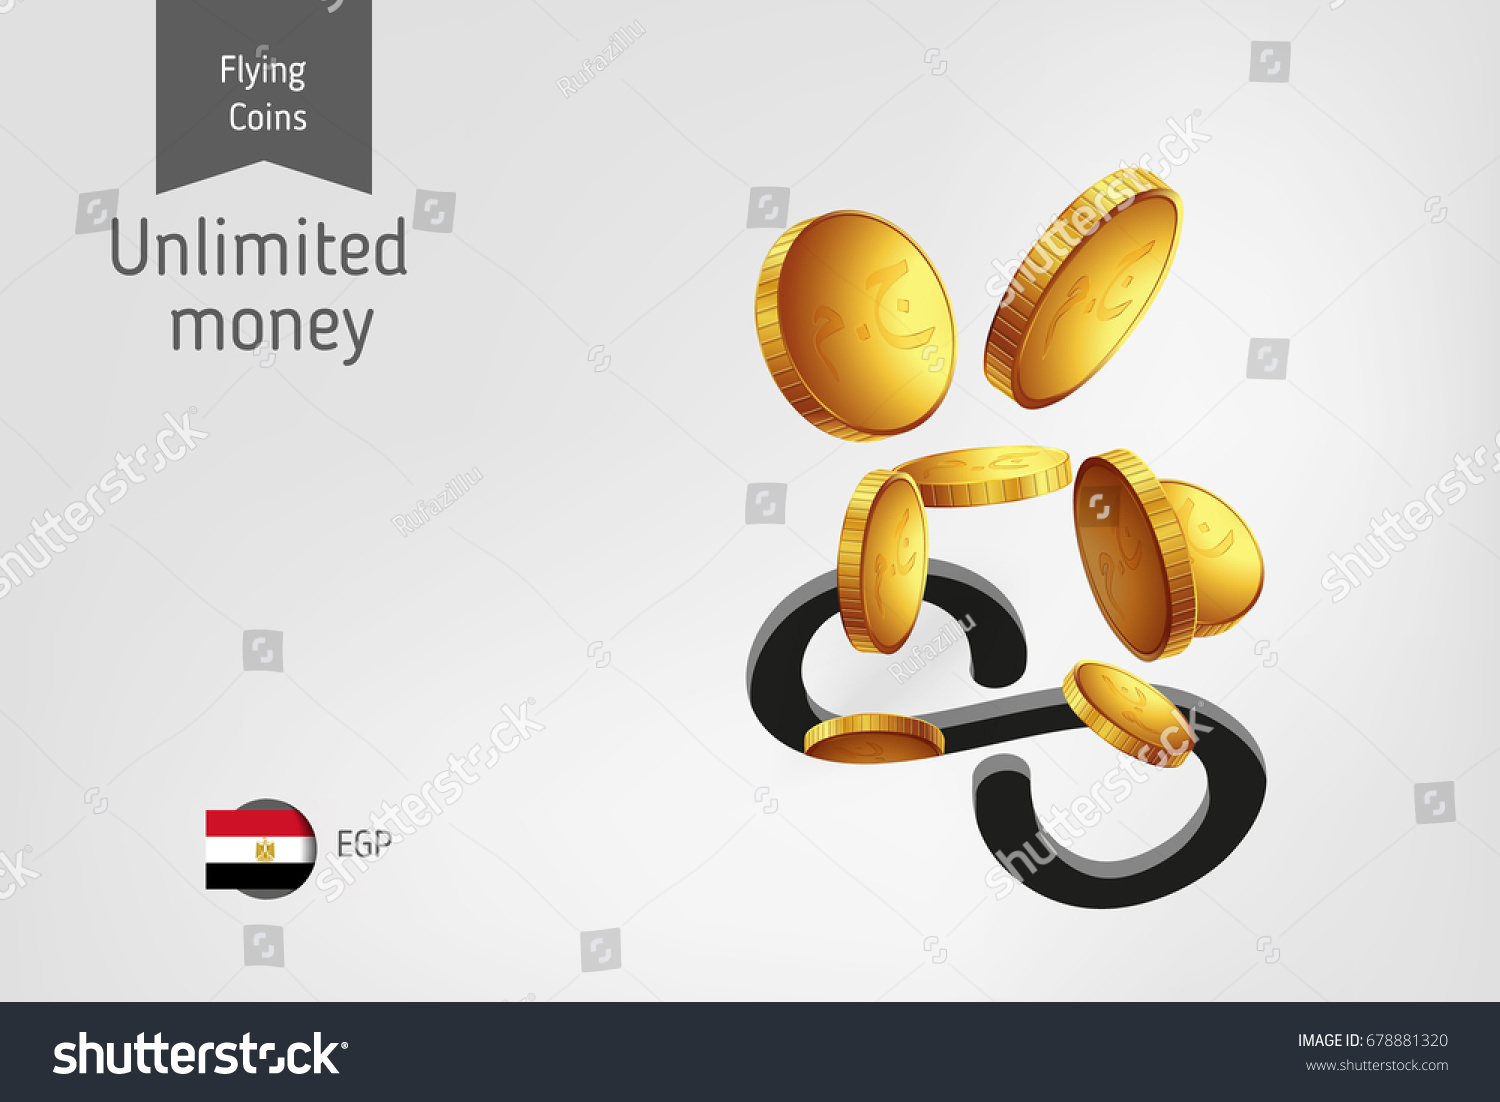 Infinity icon flying egyptian pound coins stock vector 678881320 infinity icon with flying egyptian pound coins finance concept biocorpaavc Images